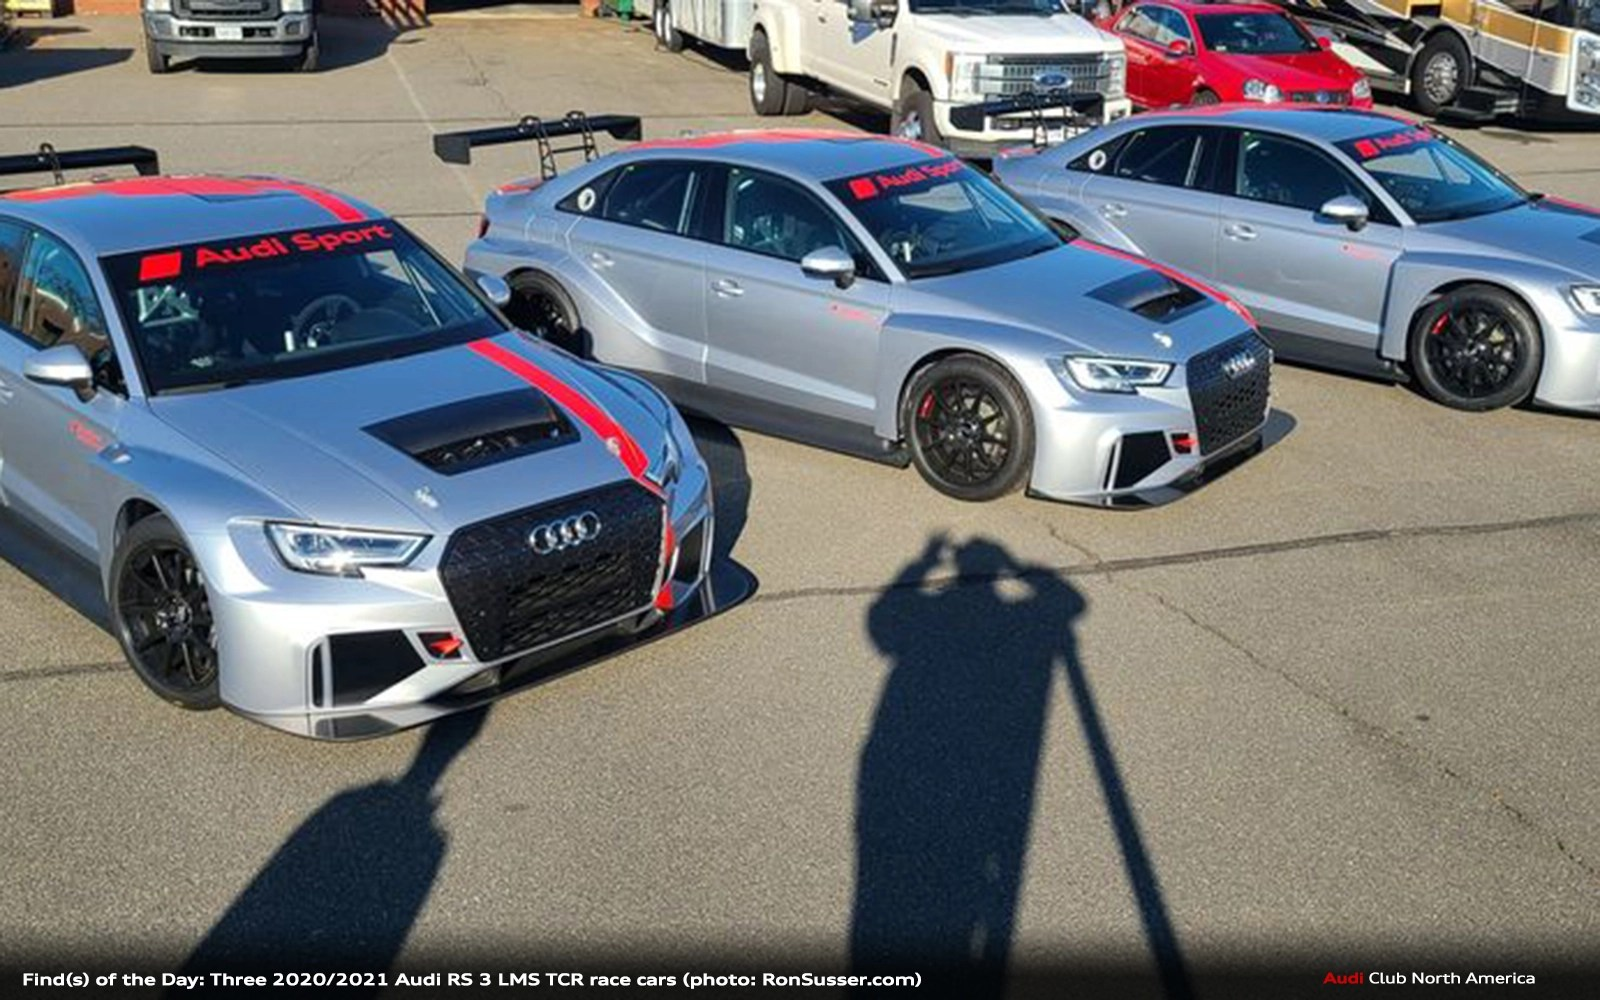 Find(s) of the Day: Three Race Ready 2020/2021 Audi Sport RS 3 LMS TCR